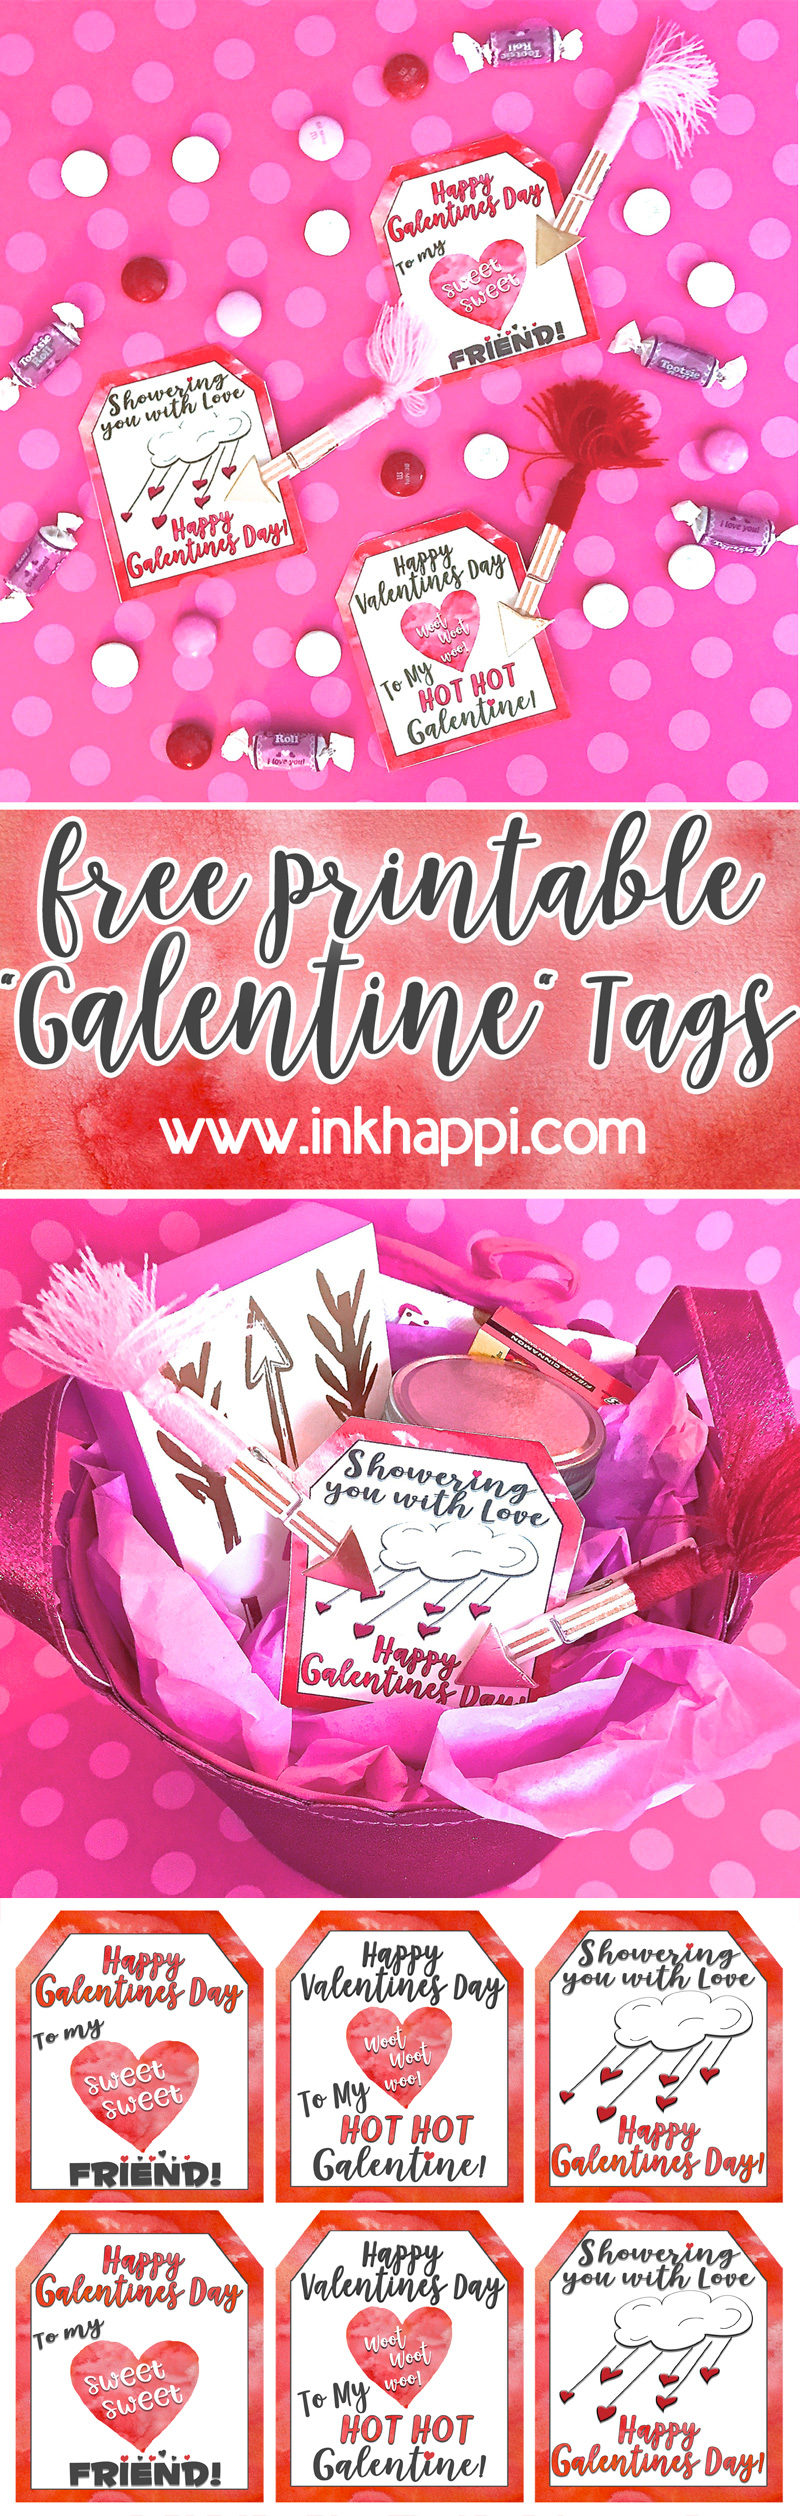 What a cute way to show the gals in your life some love with these Free Printable Galentine Gift Tags! #valentine #galentine #freeprintables